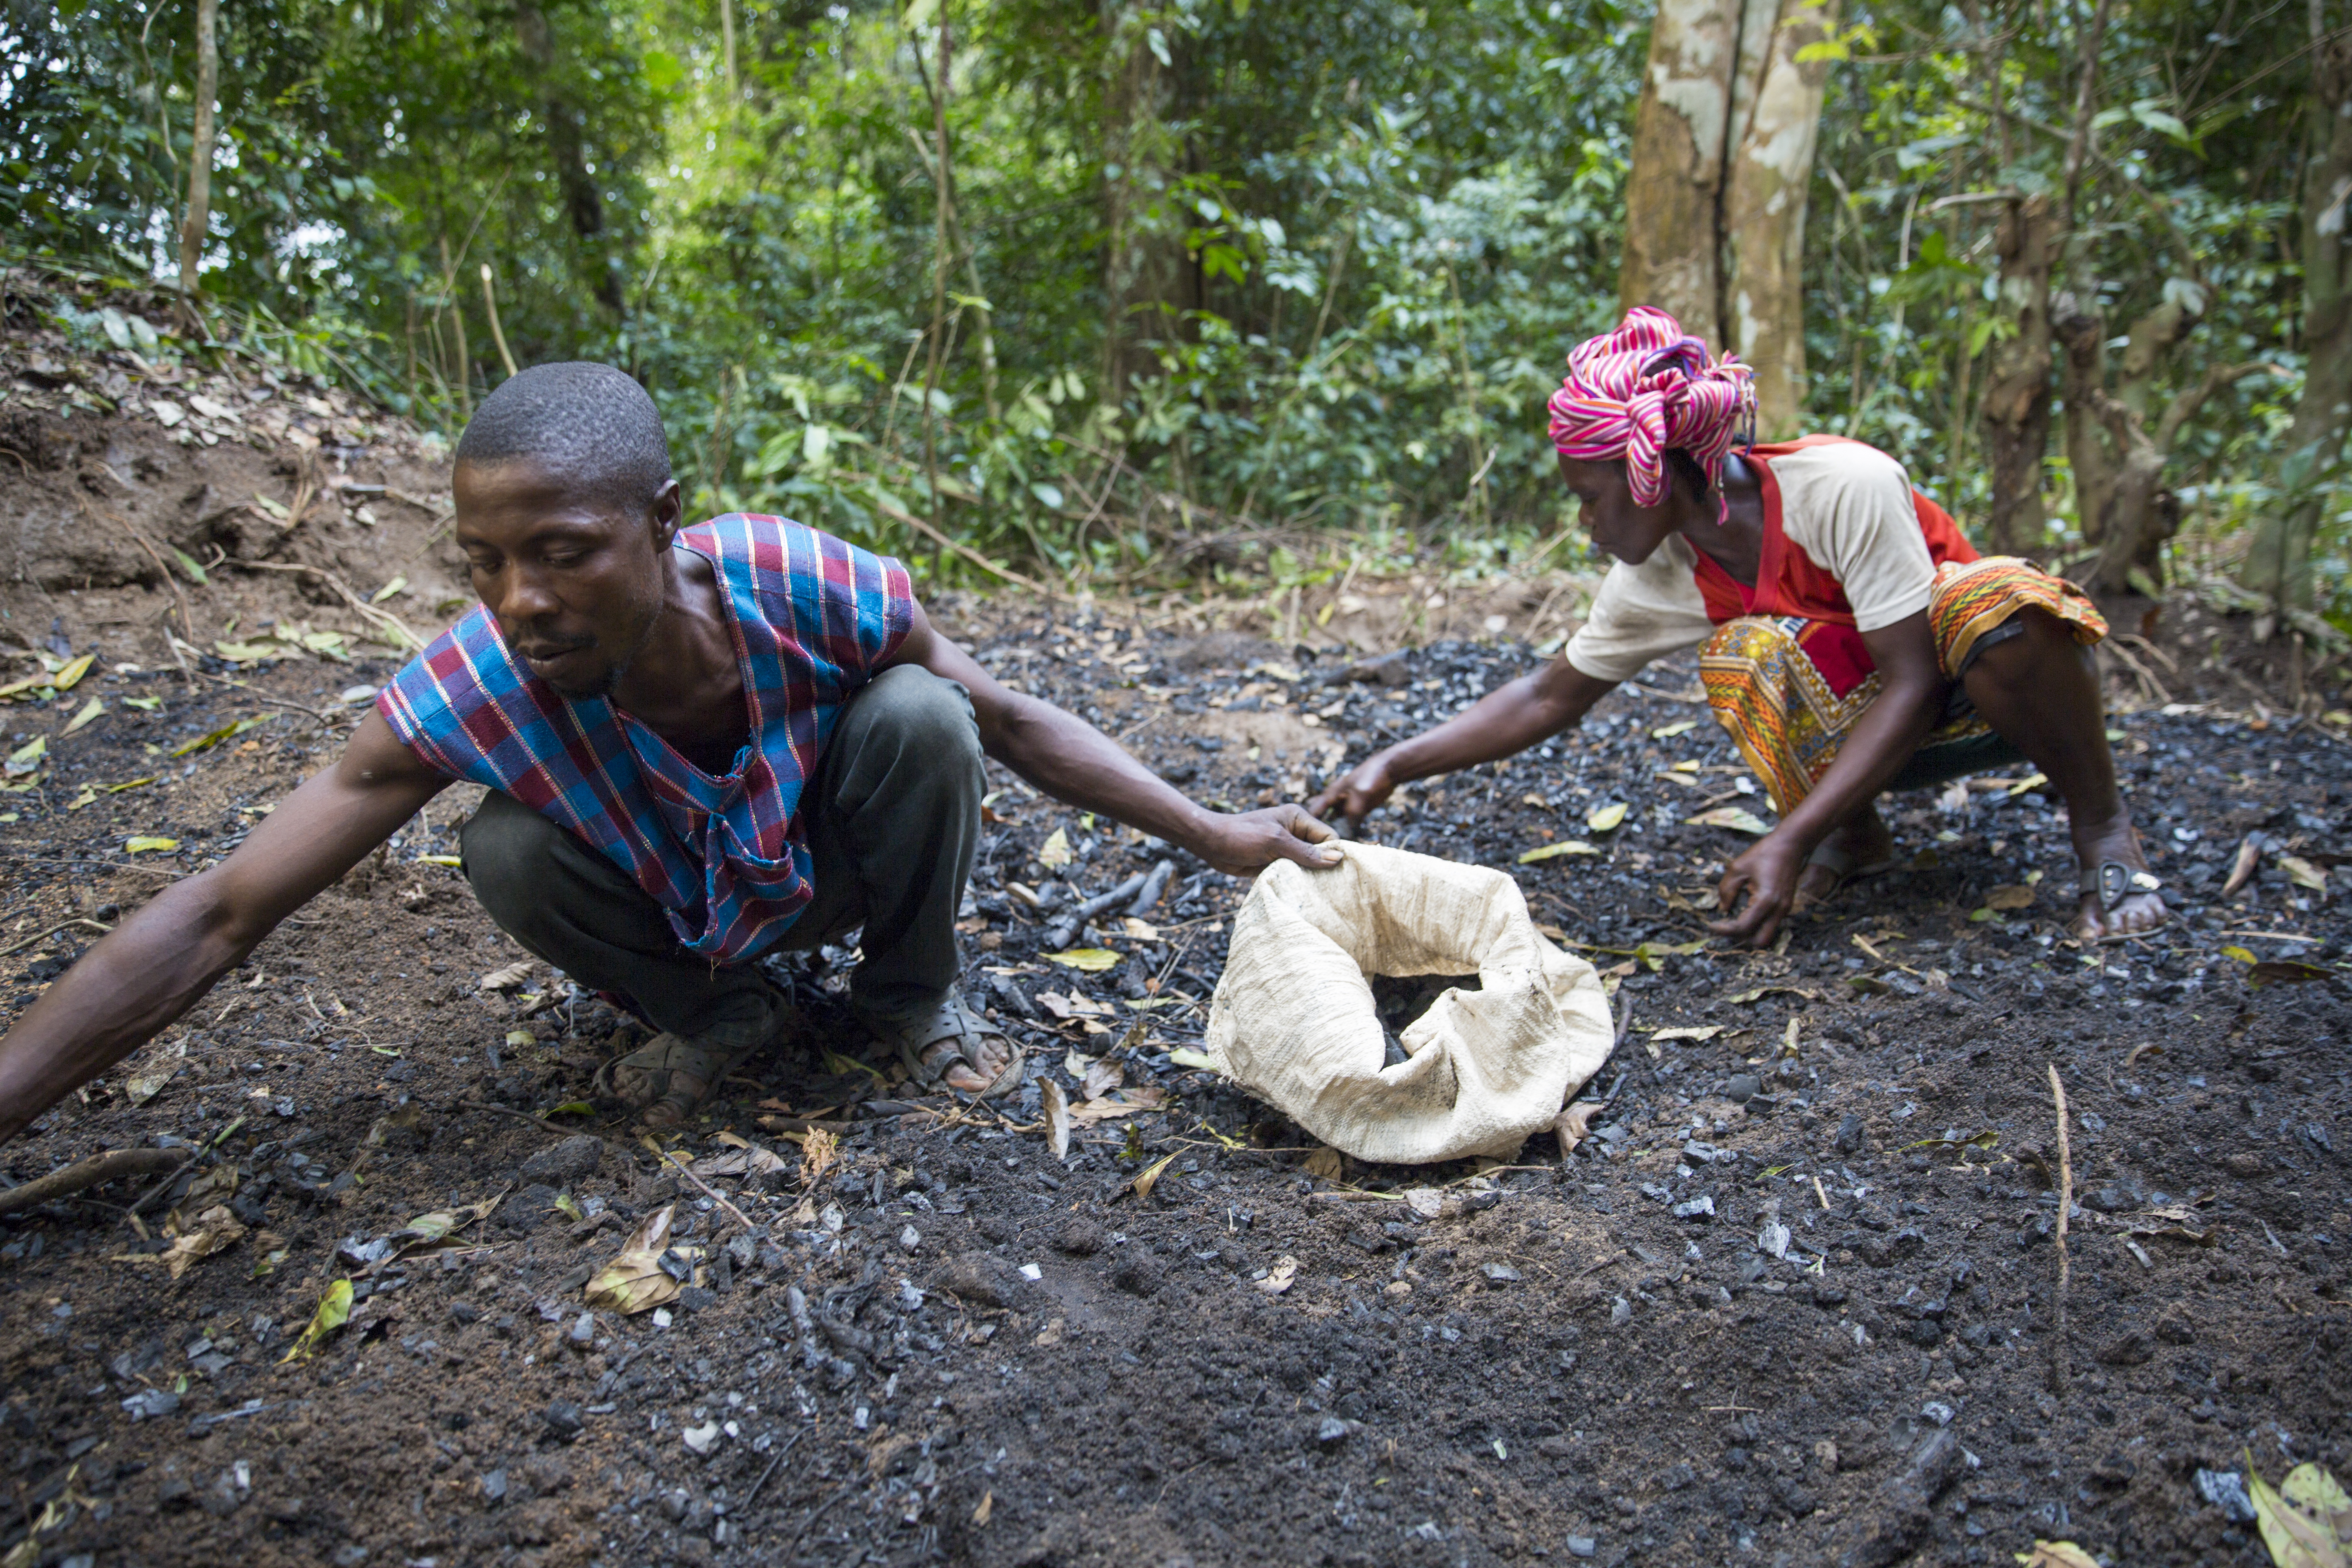 Man and woman collecting charcoal at a pit in the forest